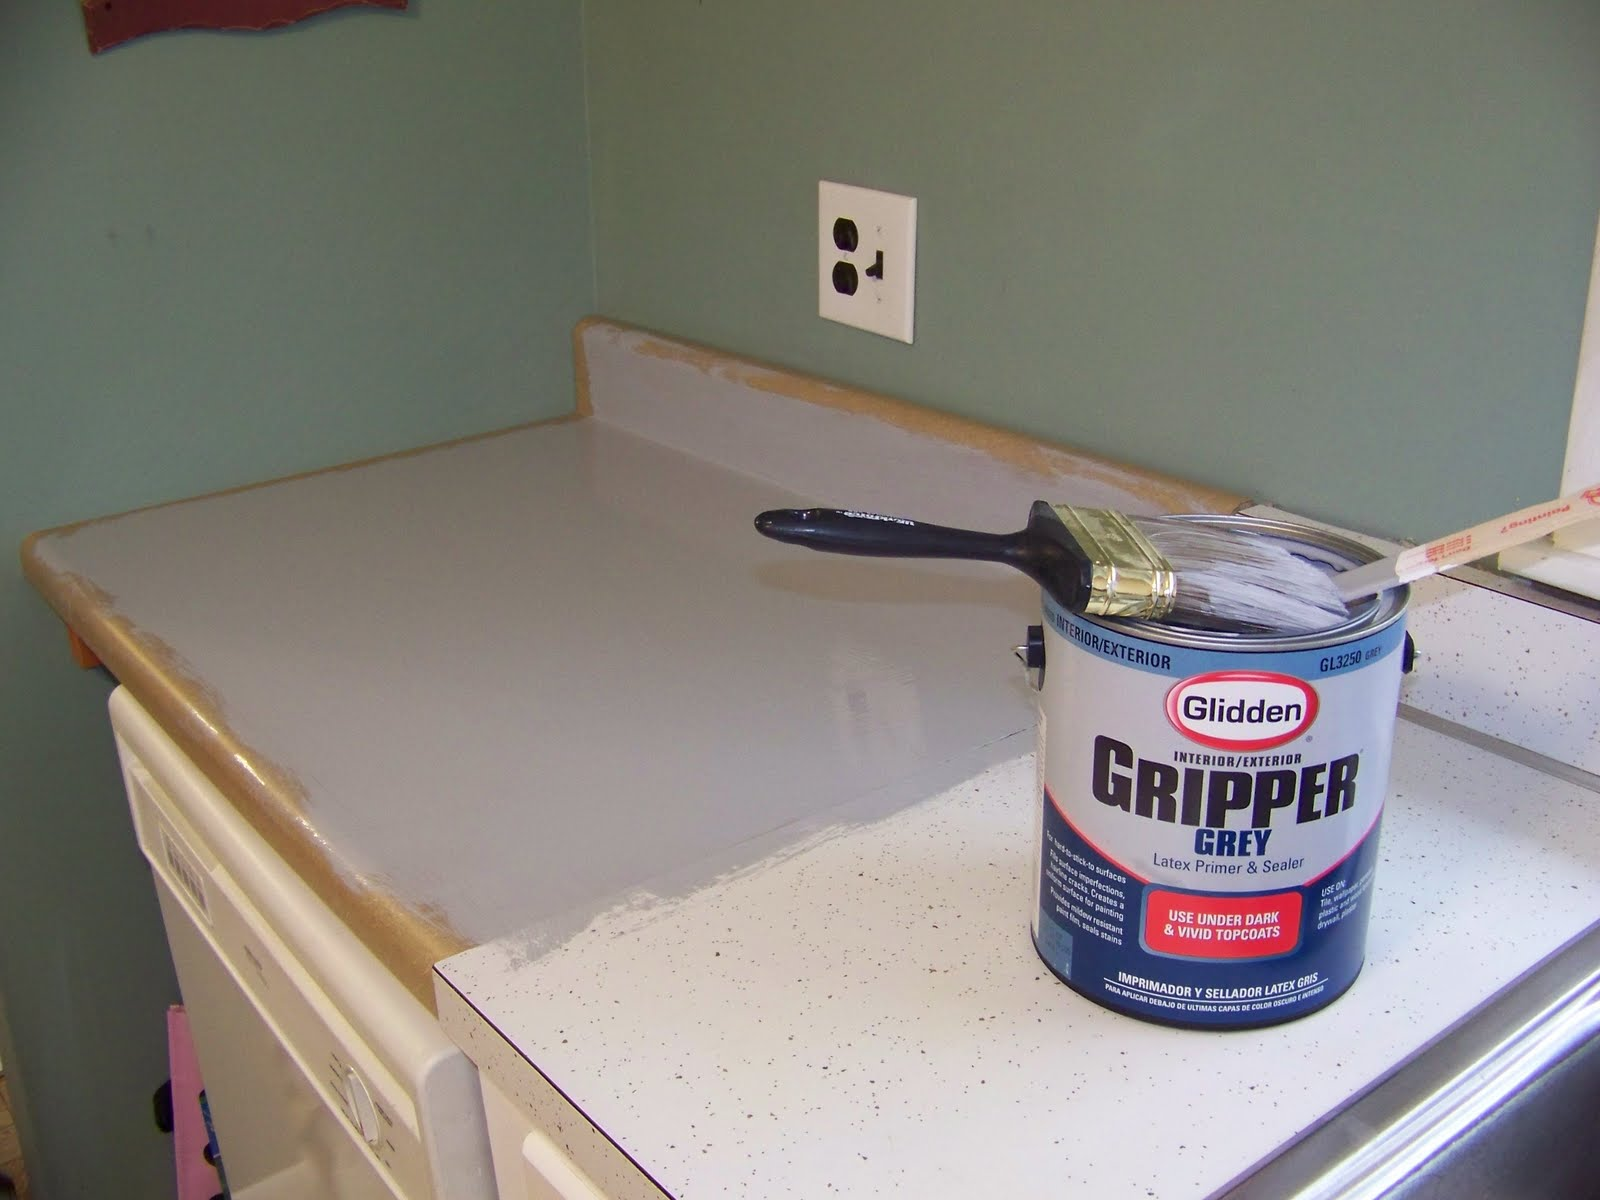 Valspar Countertop Paint : ... walls, cabinets, and sinks that would be exposed to the spray paint